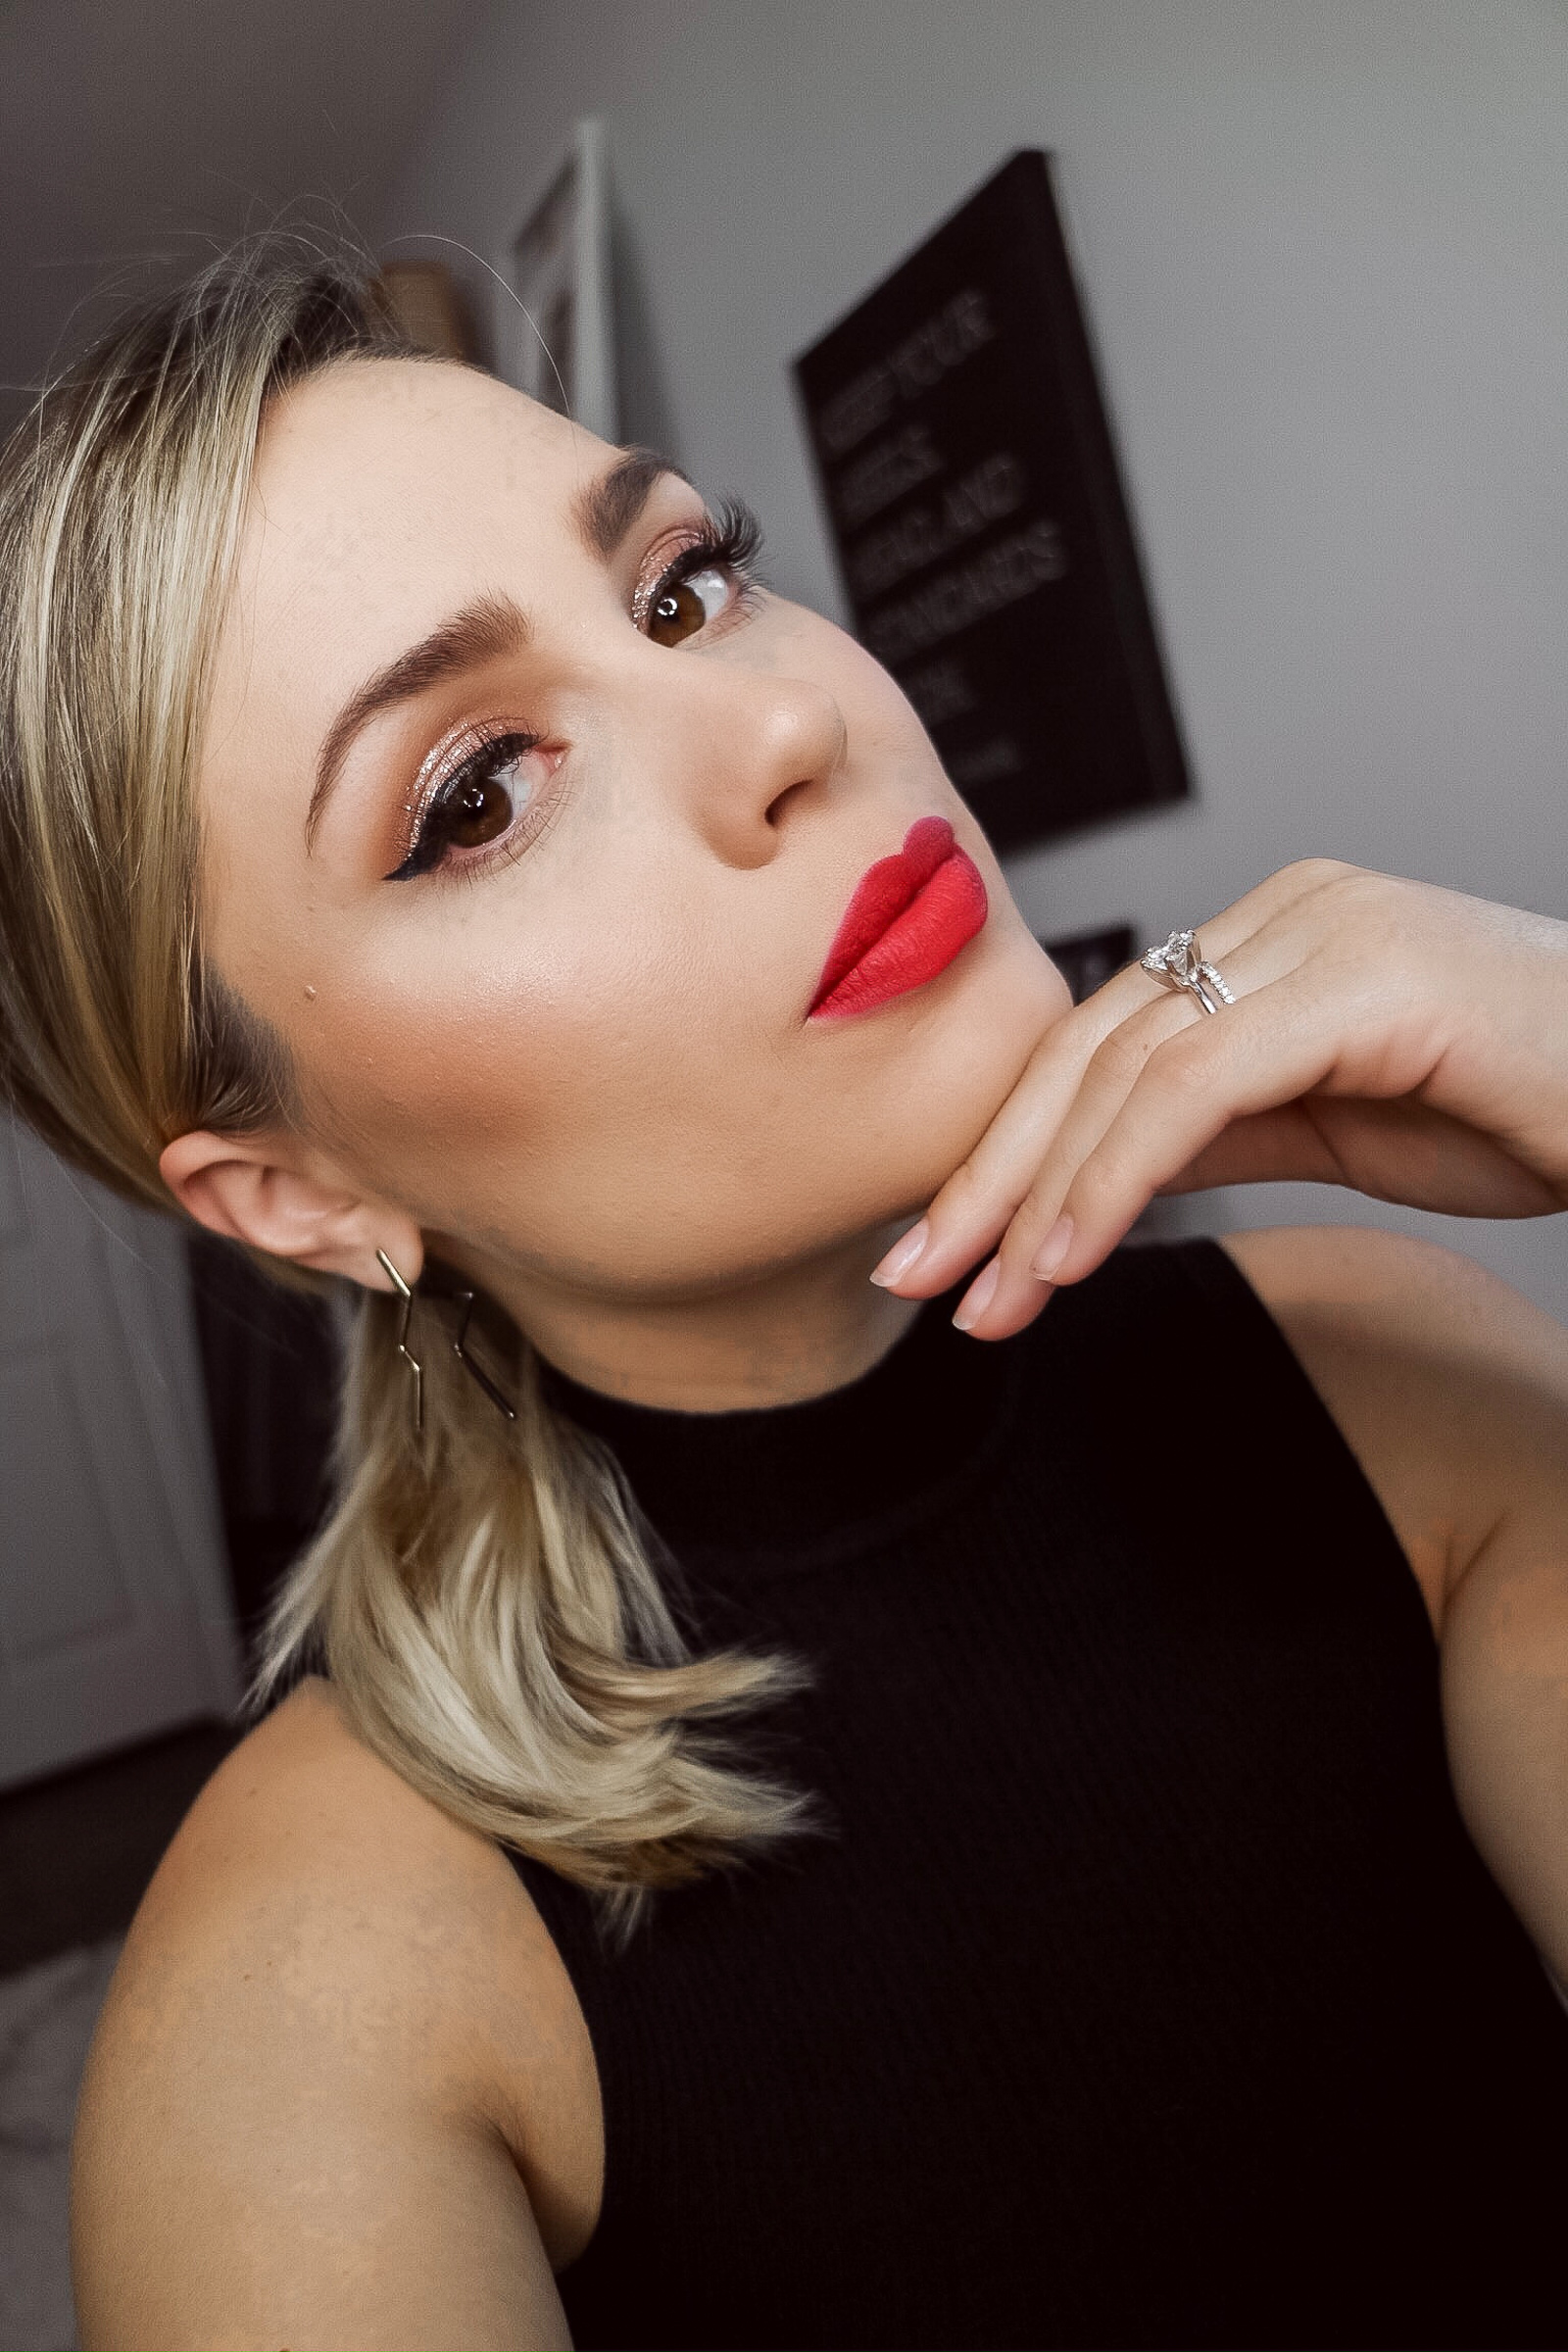 Houston beauty blogger Uptown with Elly Brown wears a festive holiday makeup look with a bold red lip